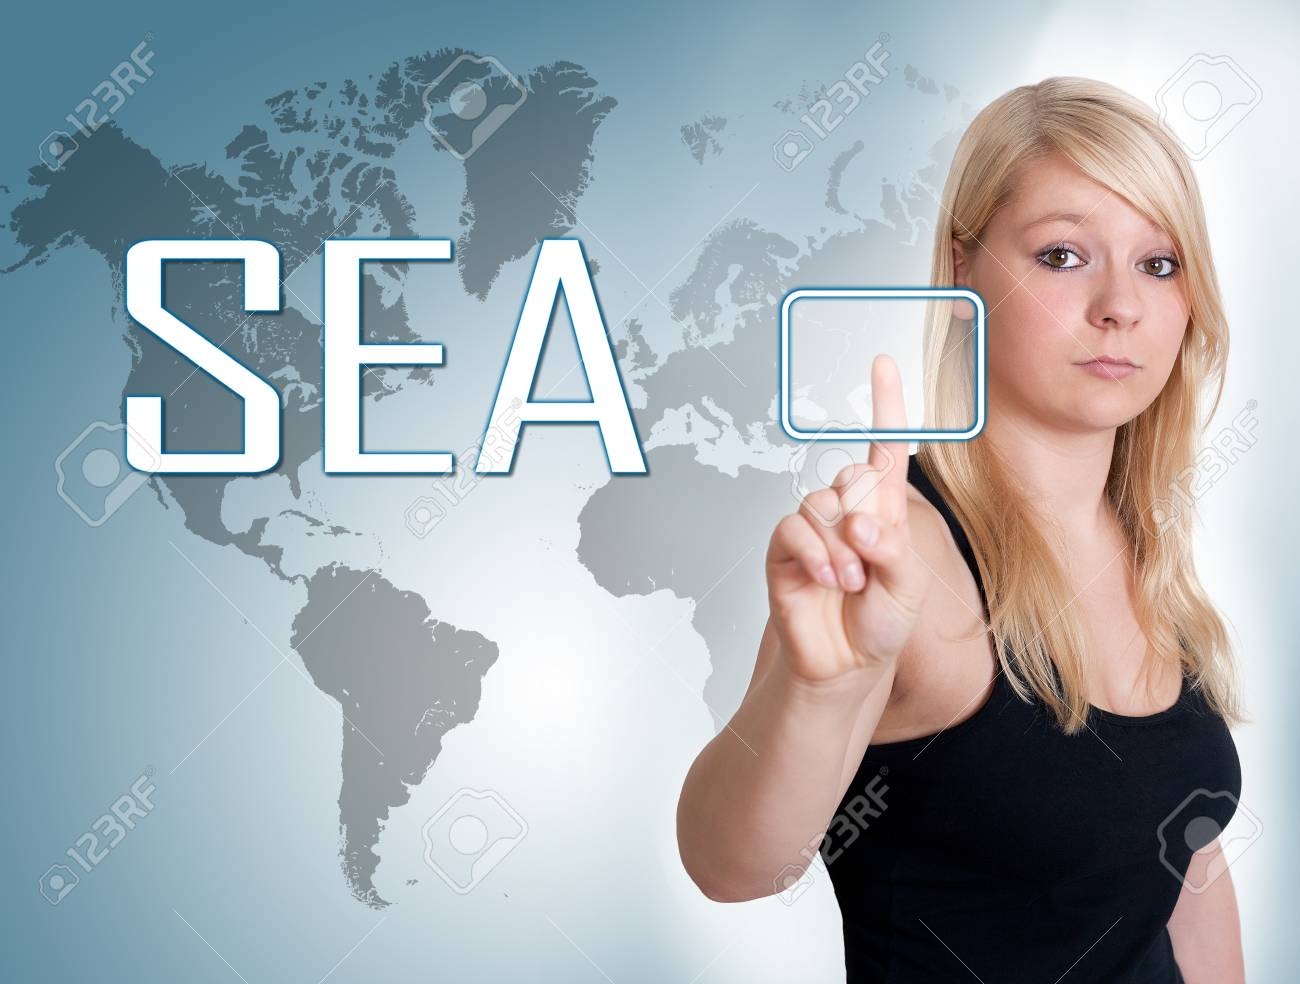 Young woman press digital SEA - Search Engine Advertising button on interface in front of her Stock Photo - 30349818